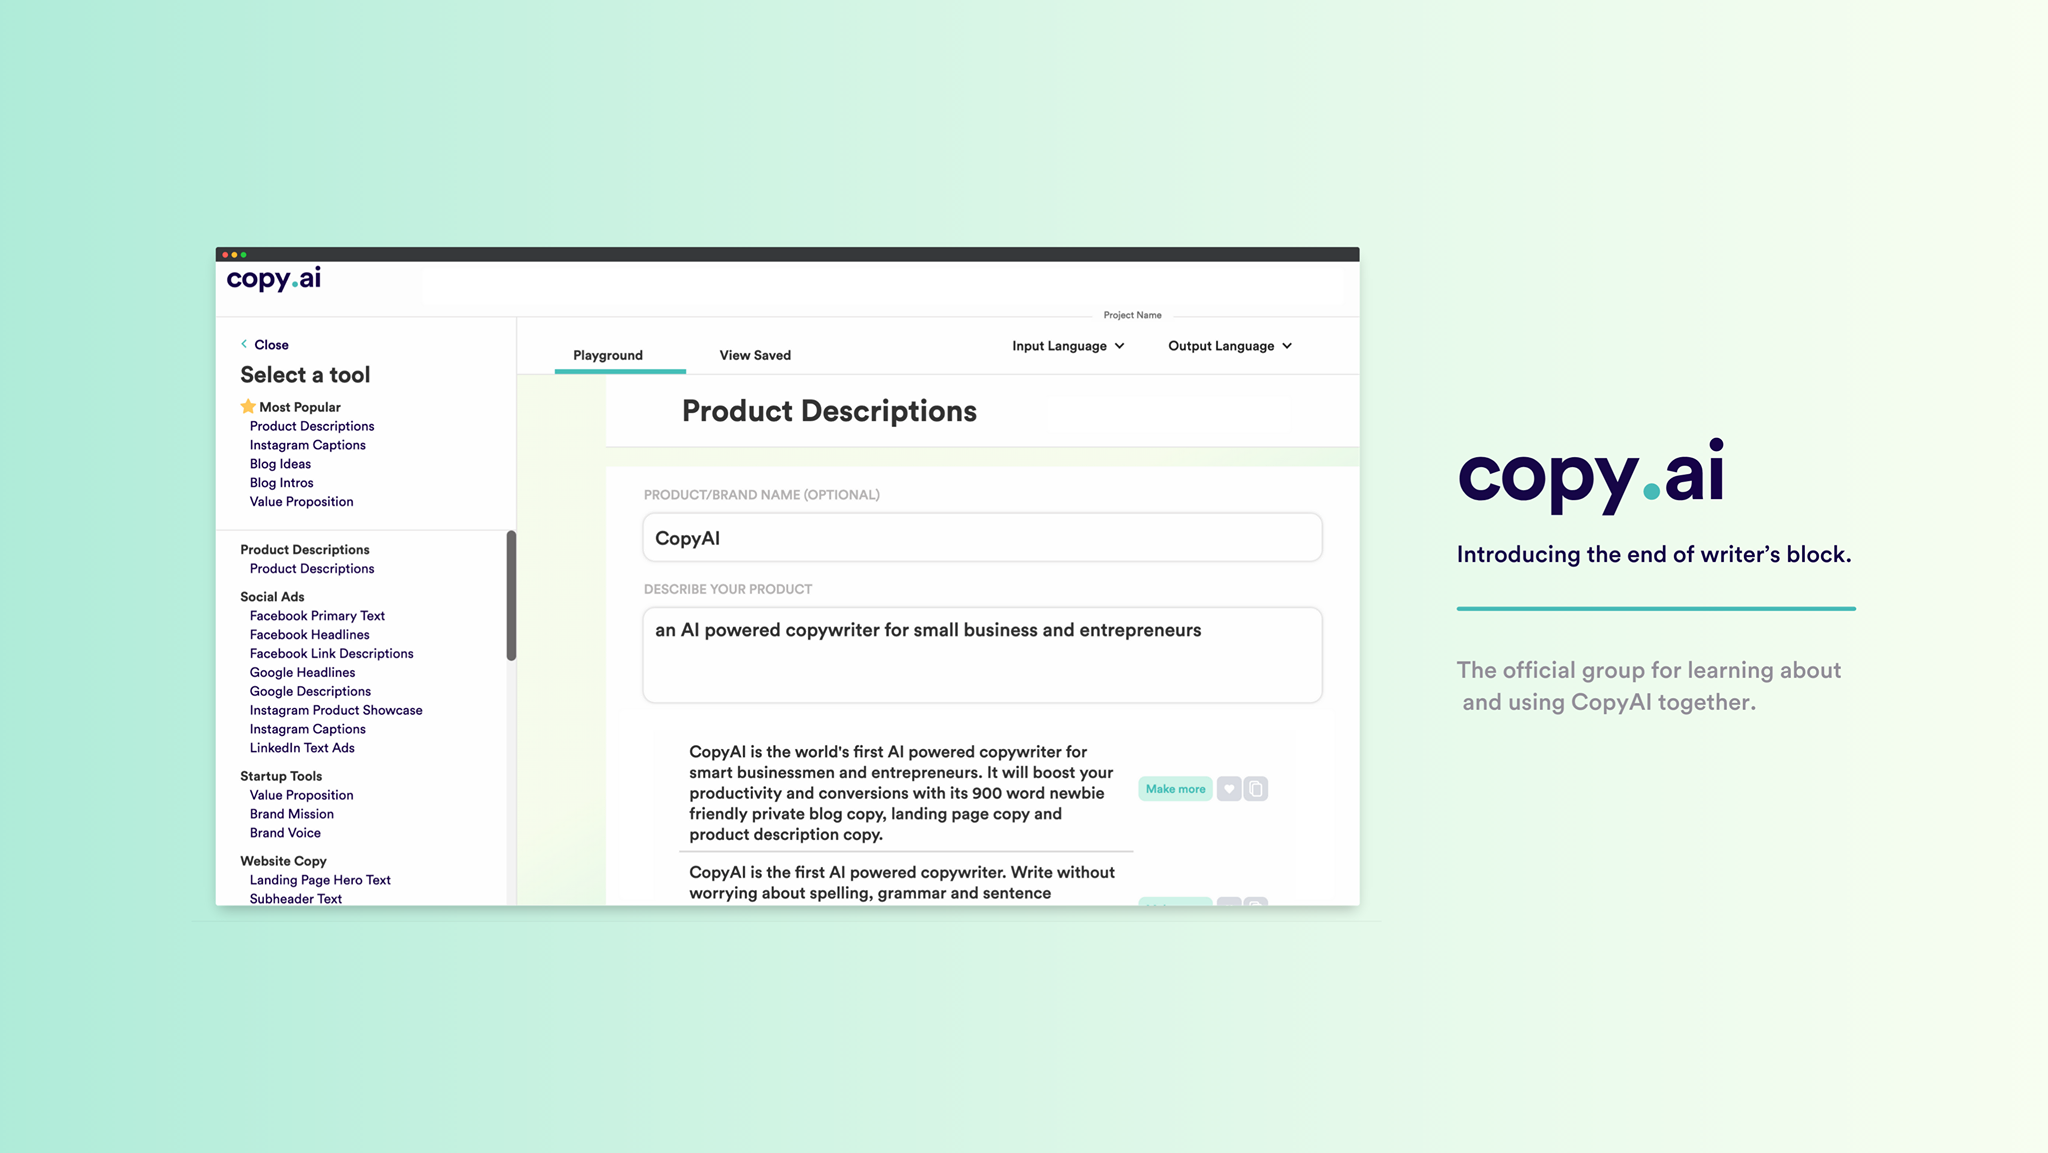 Open the CopyAI app to get started with X